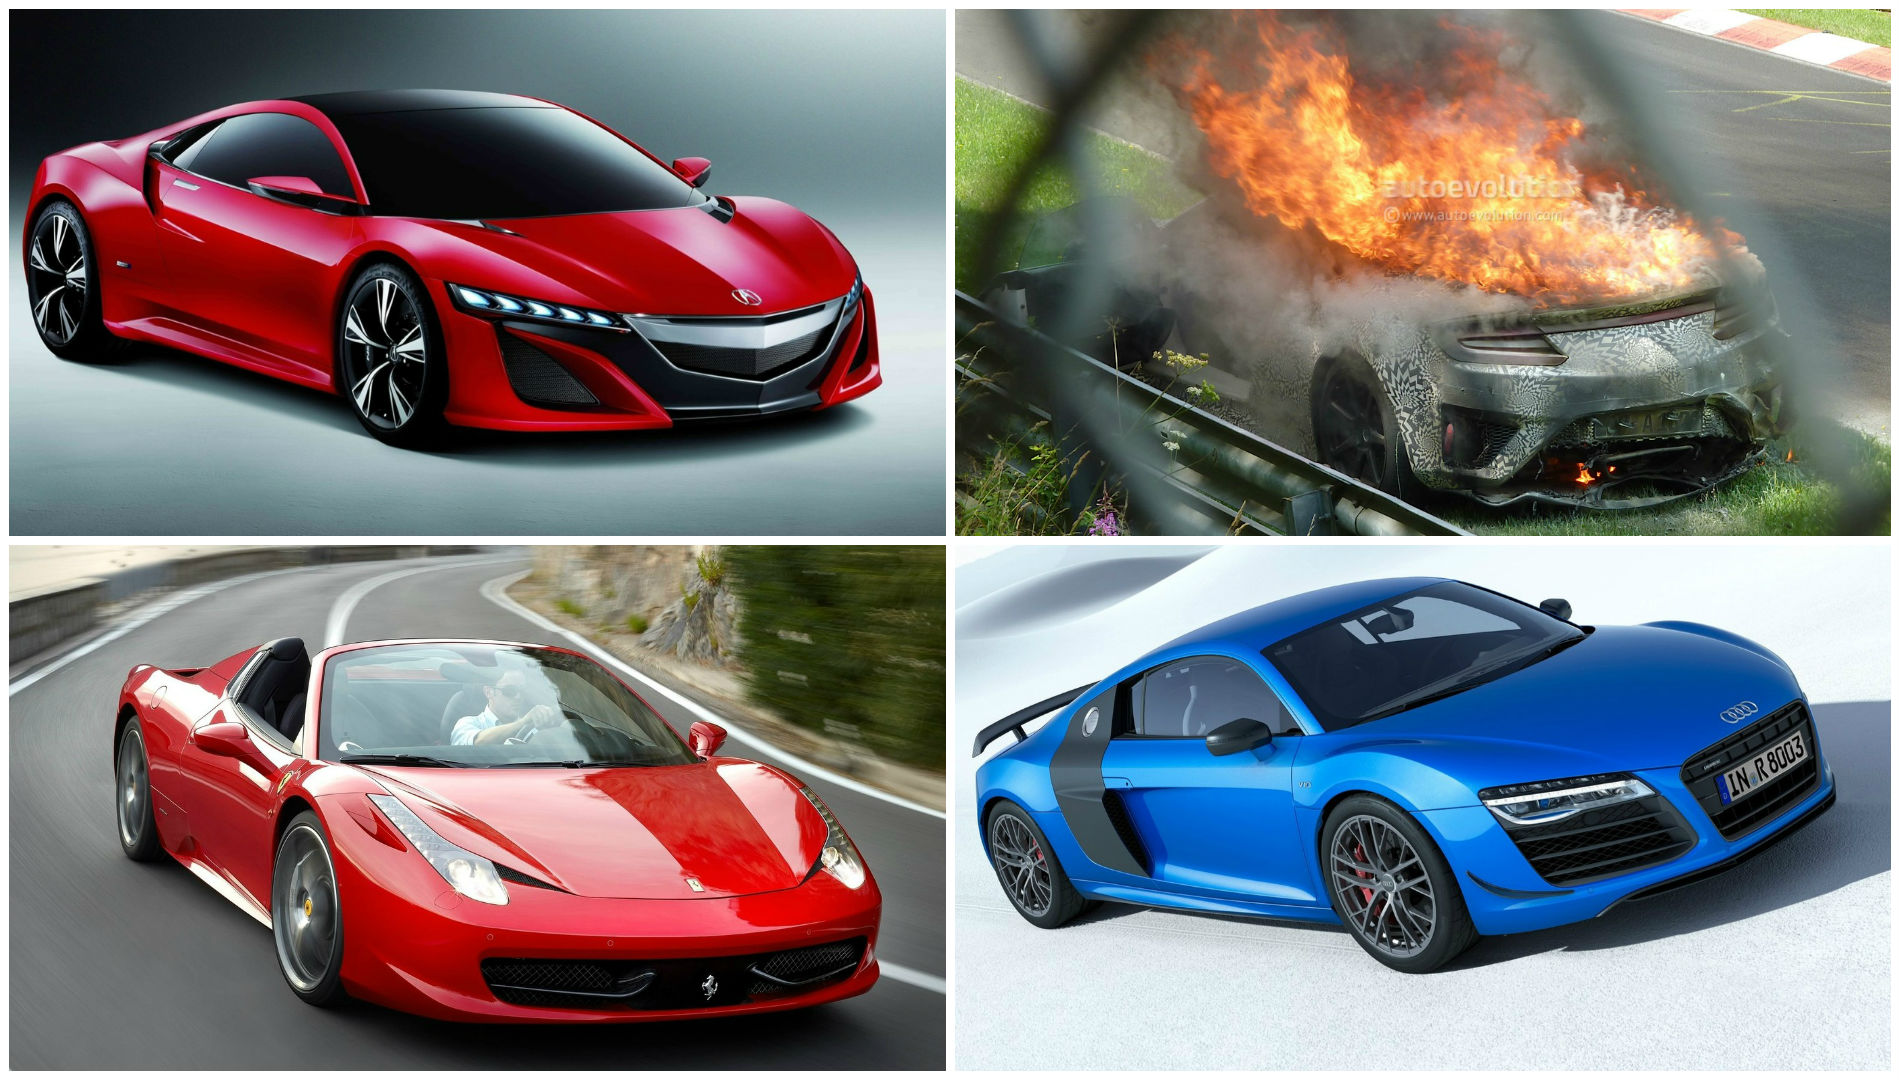 new acura nsx ferrari 458 performance at audi r8 prices autoevolution. Black Bedroom Furniture Sets. Home Design Ideas